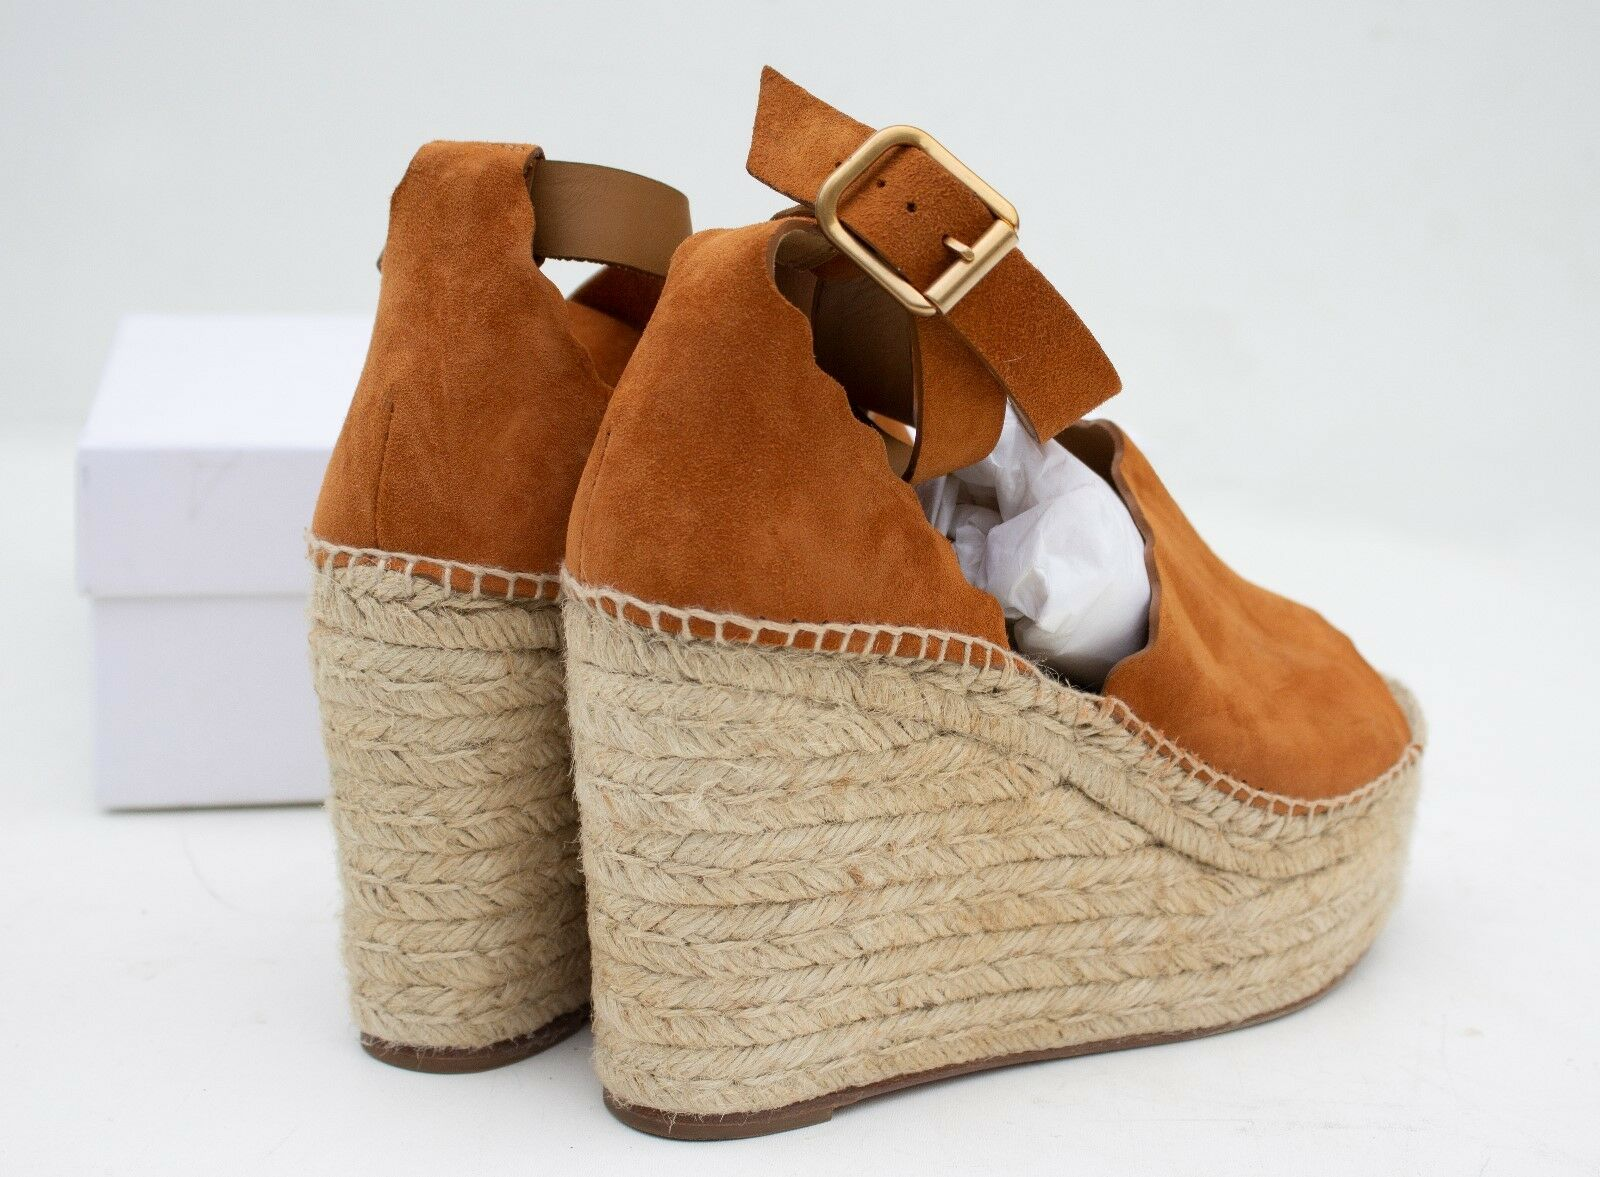 CHLOE CHLOE CHLOE Lauren Espadrille Wedge in Ochre Suede Sz 40 9.5 10 in box  660 4c7c32